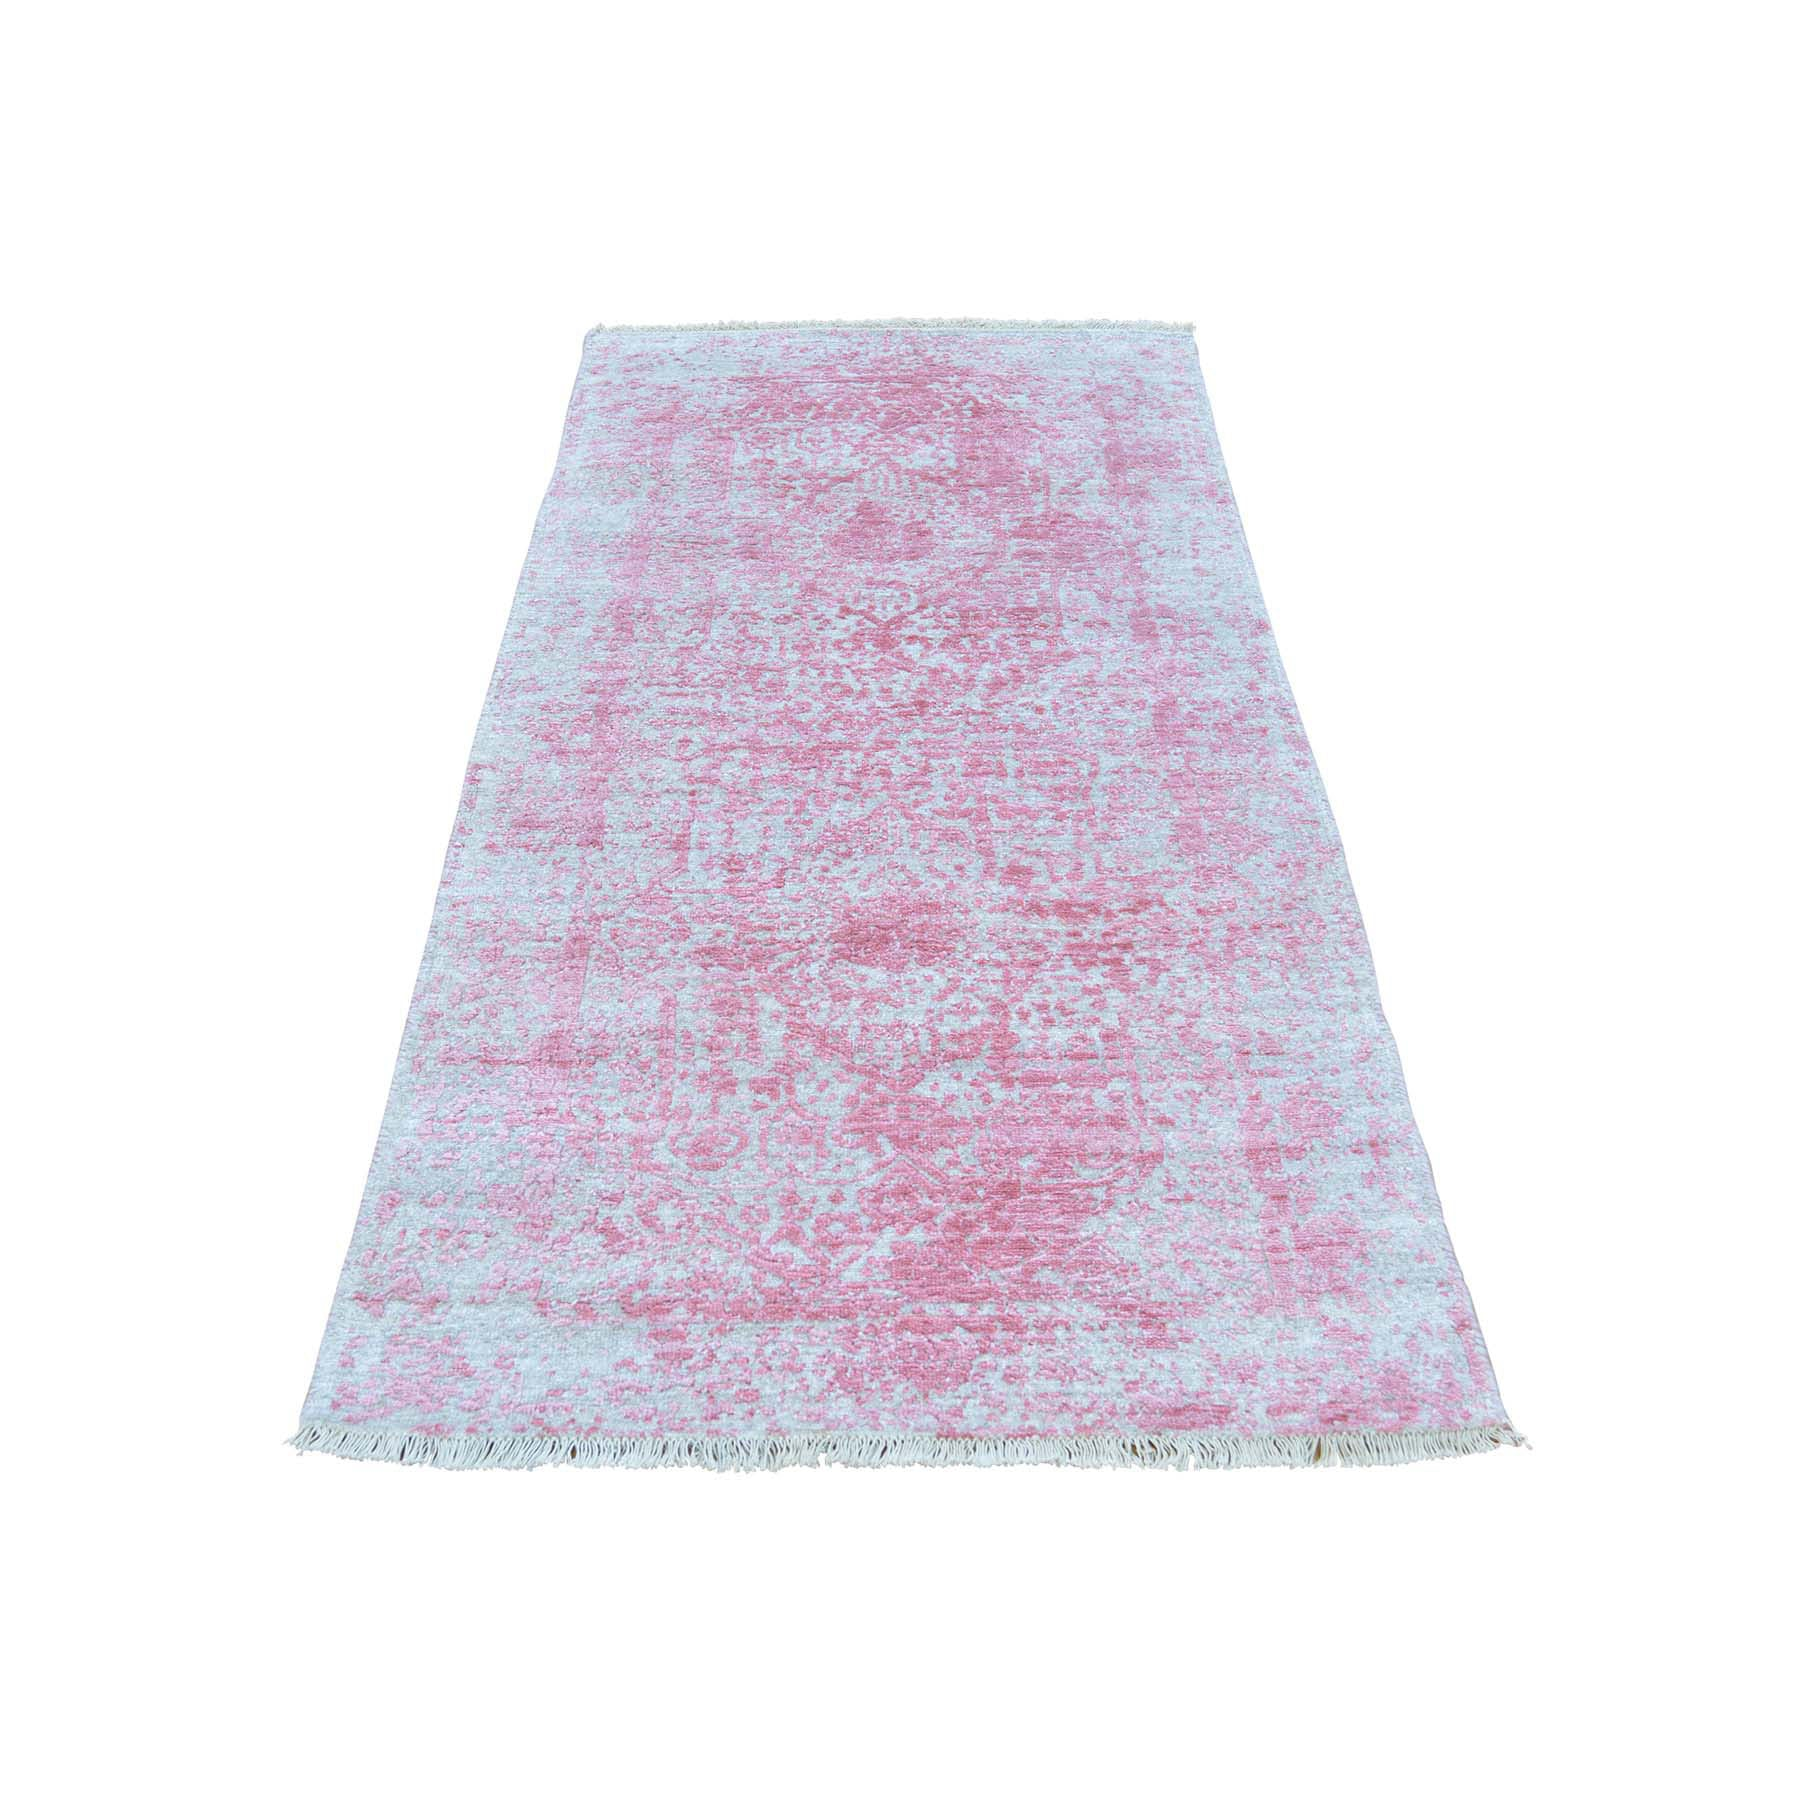 "Handmade Transitional Runner Rug > Design# SH29752 > Size: 2'-7"" x 5'-10"" [ONLINE ONLY]"